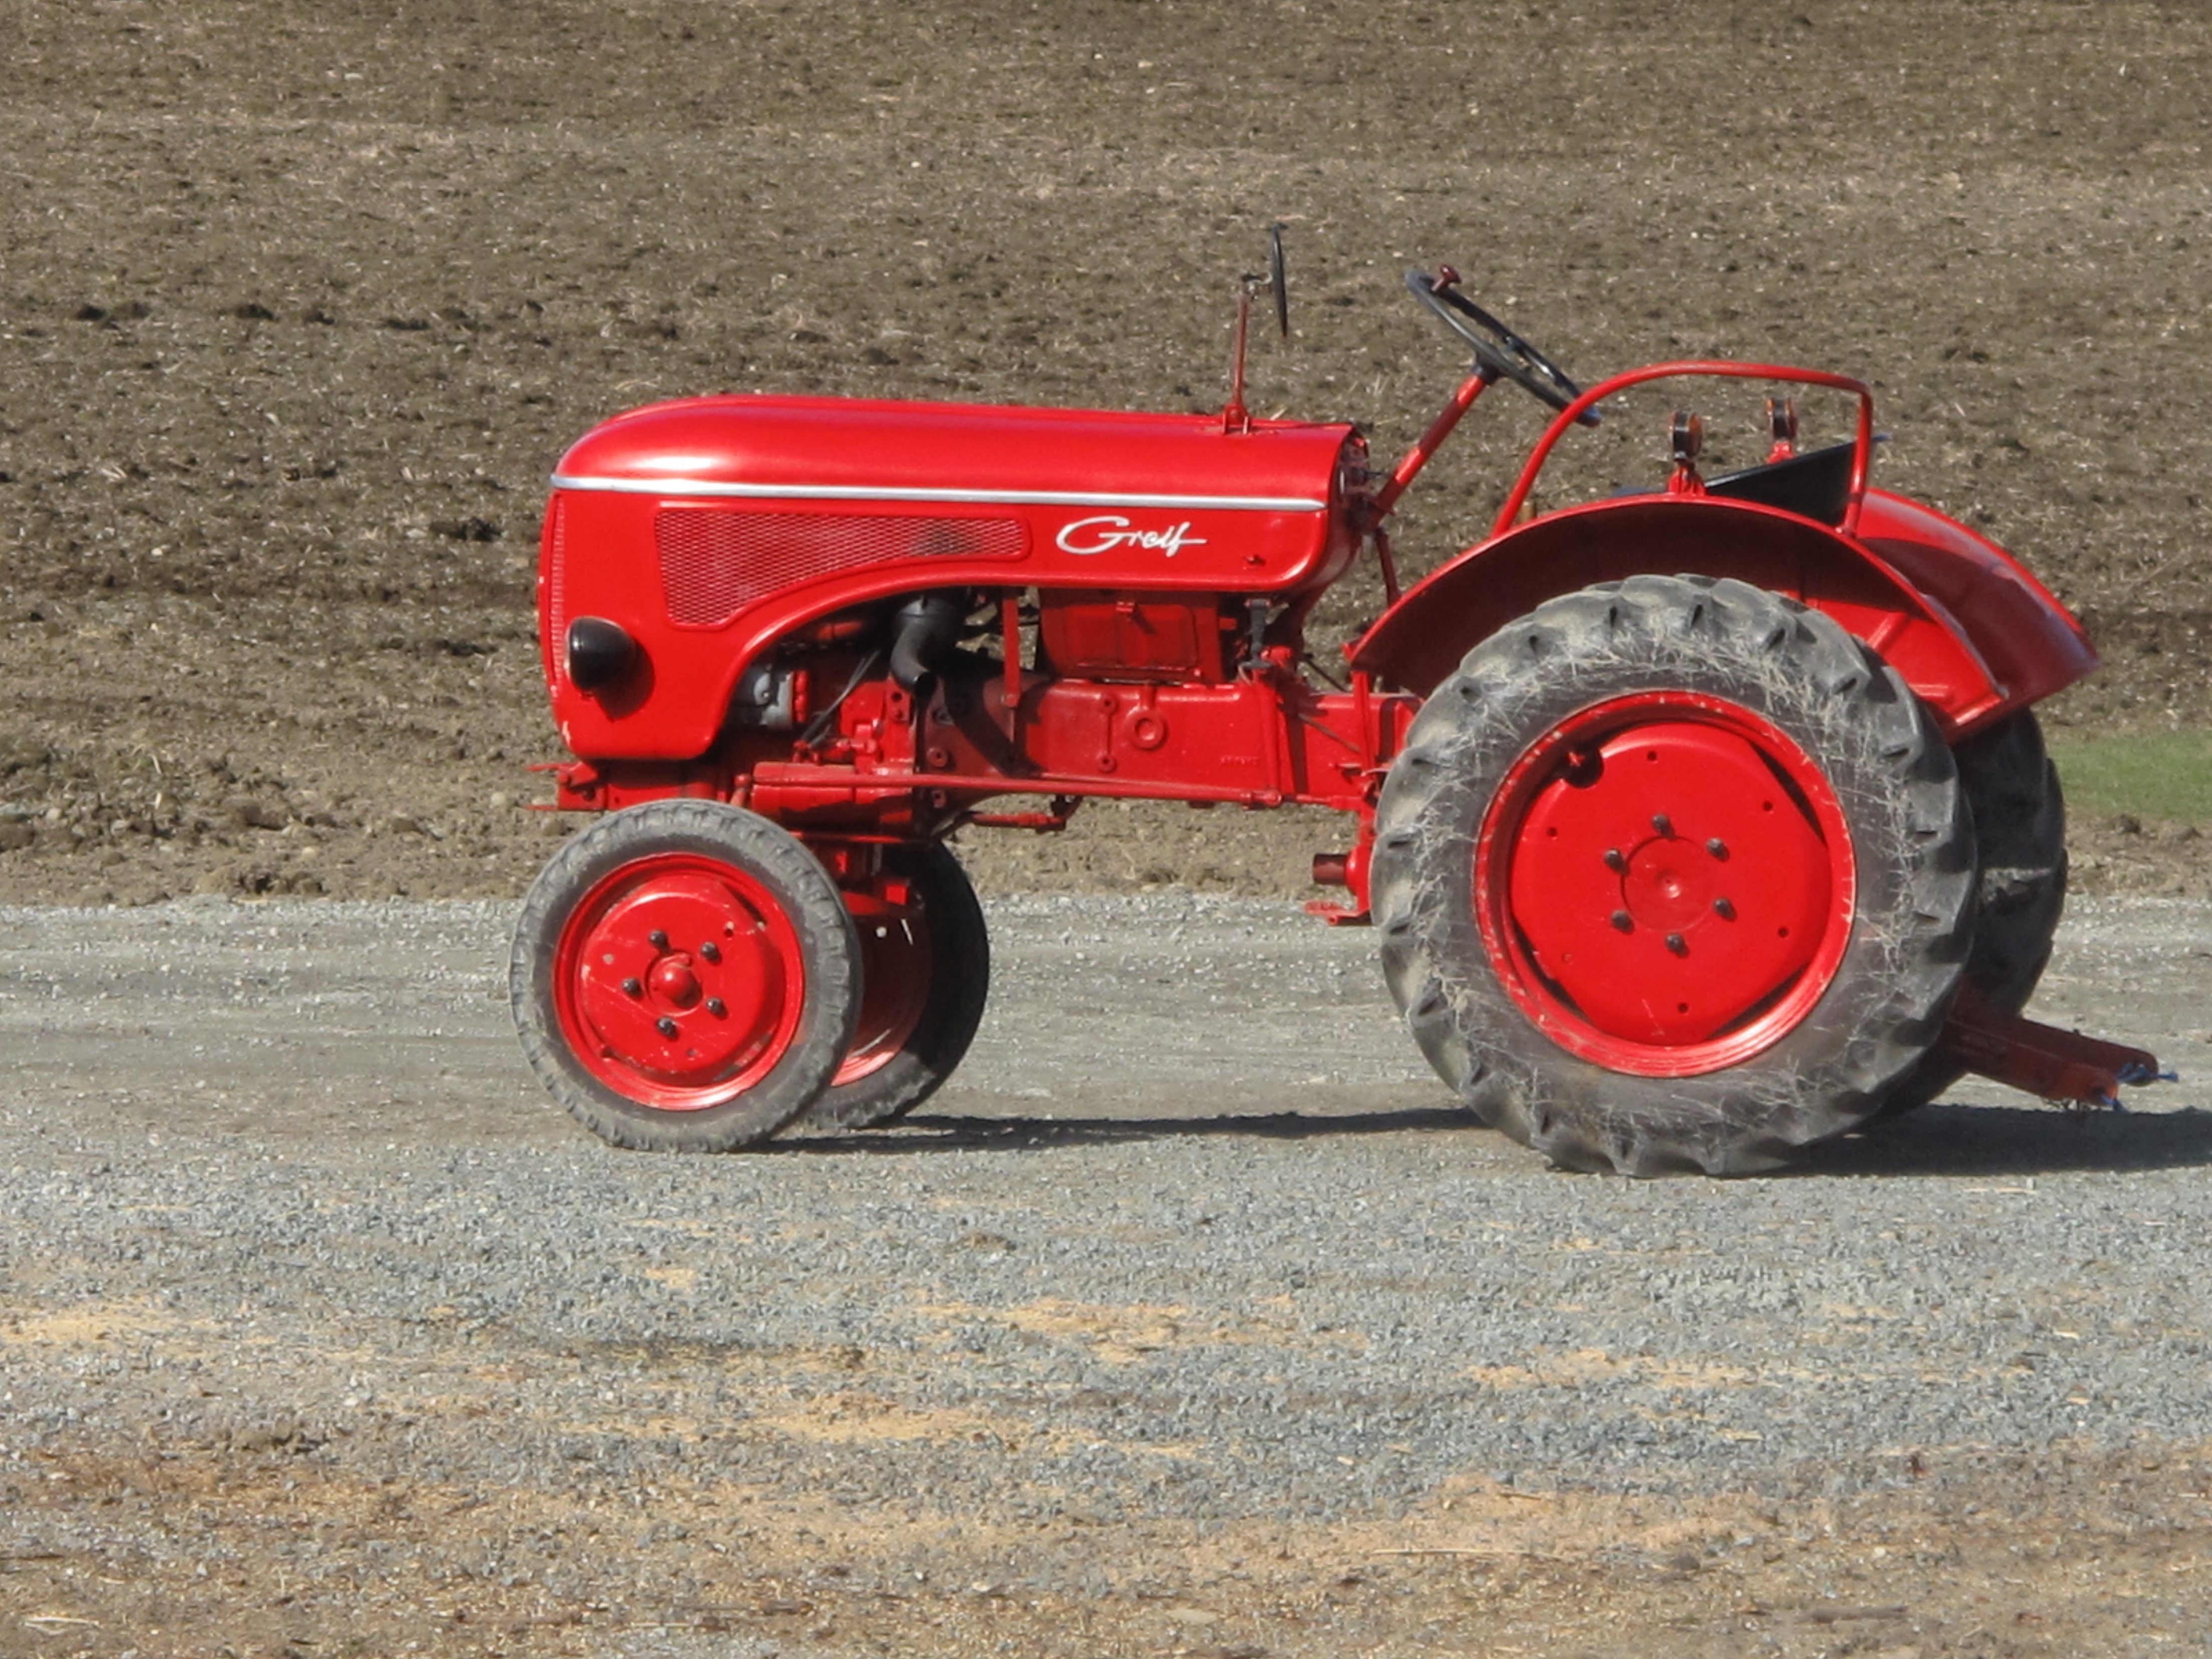 File:Red tractor (Hanomag C115 Greif).jpg - Wikimedia Commons